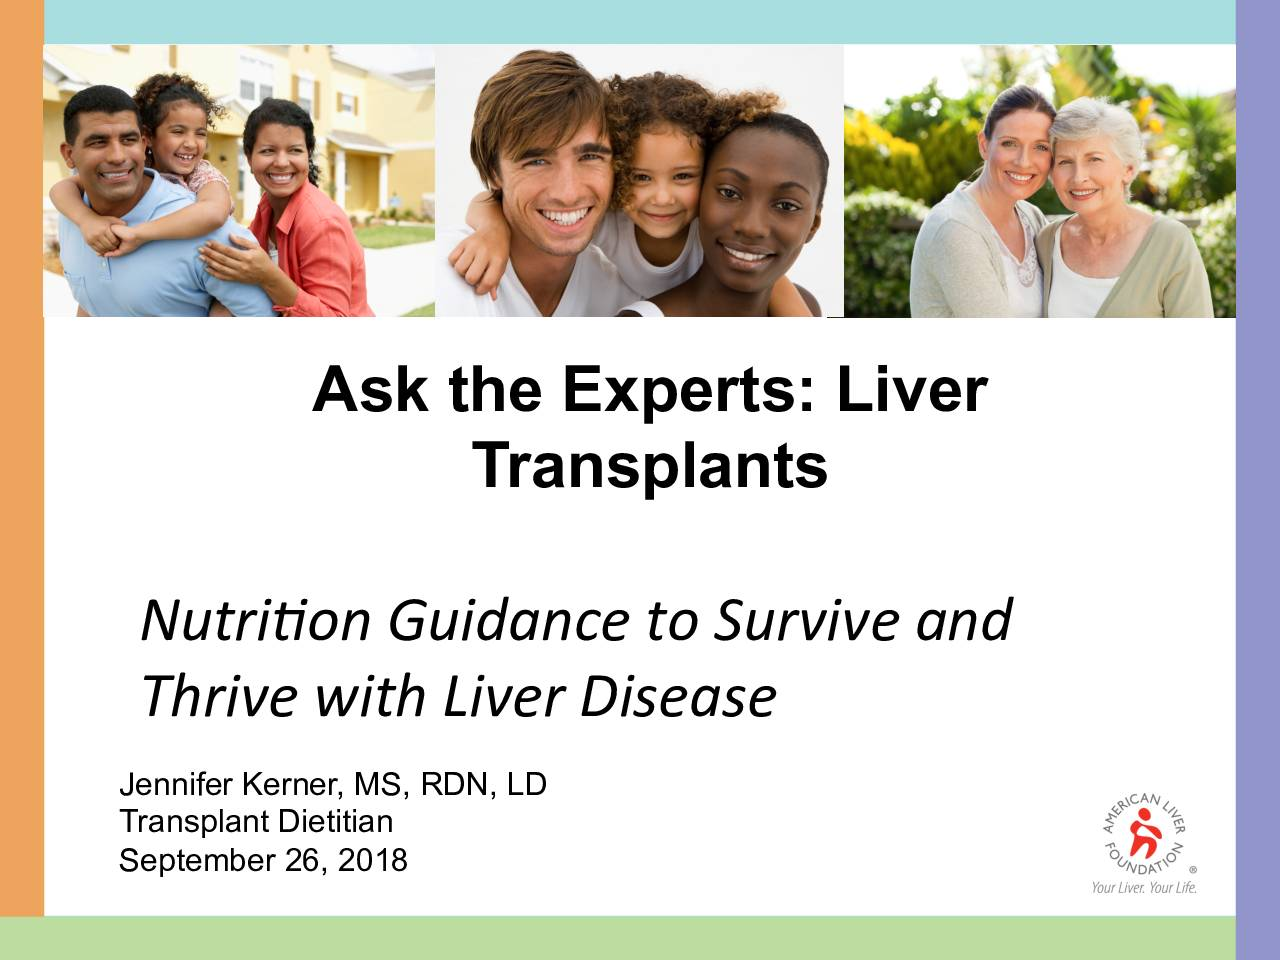 Ask the Experts: Liver Transplants